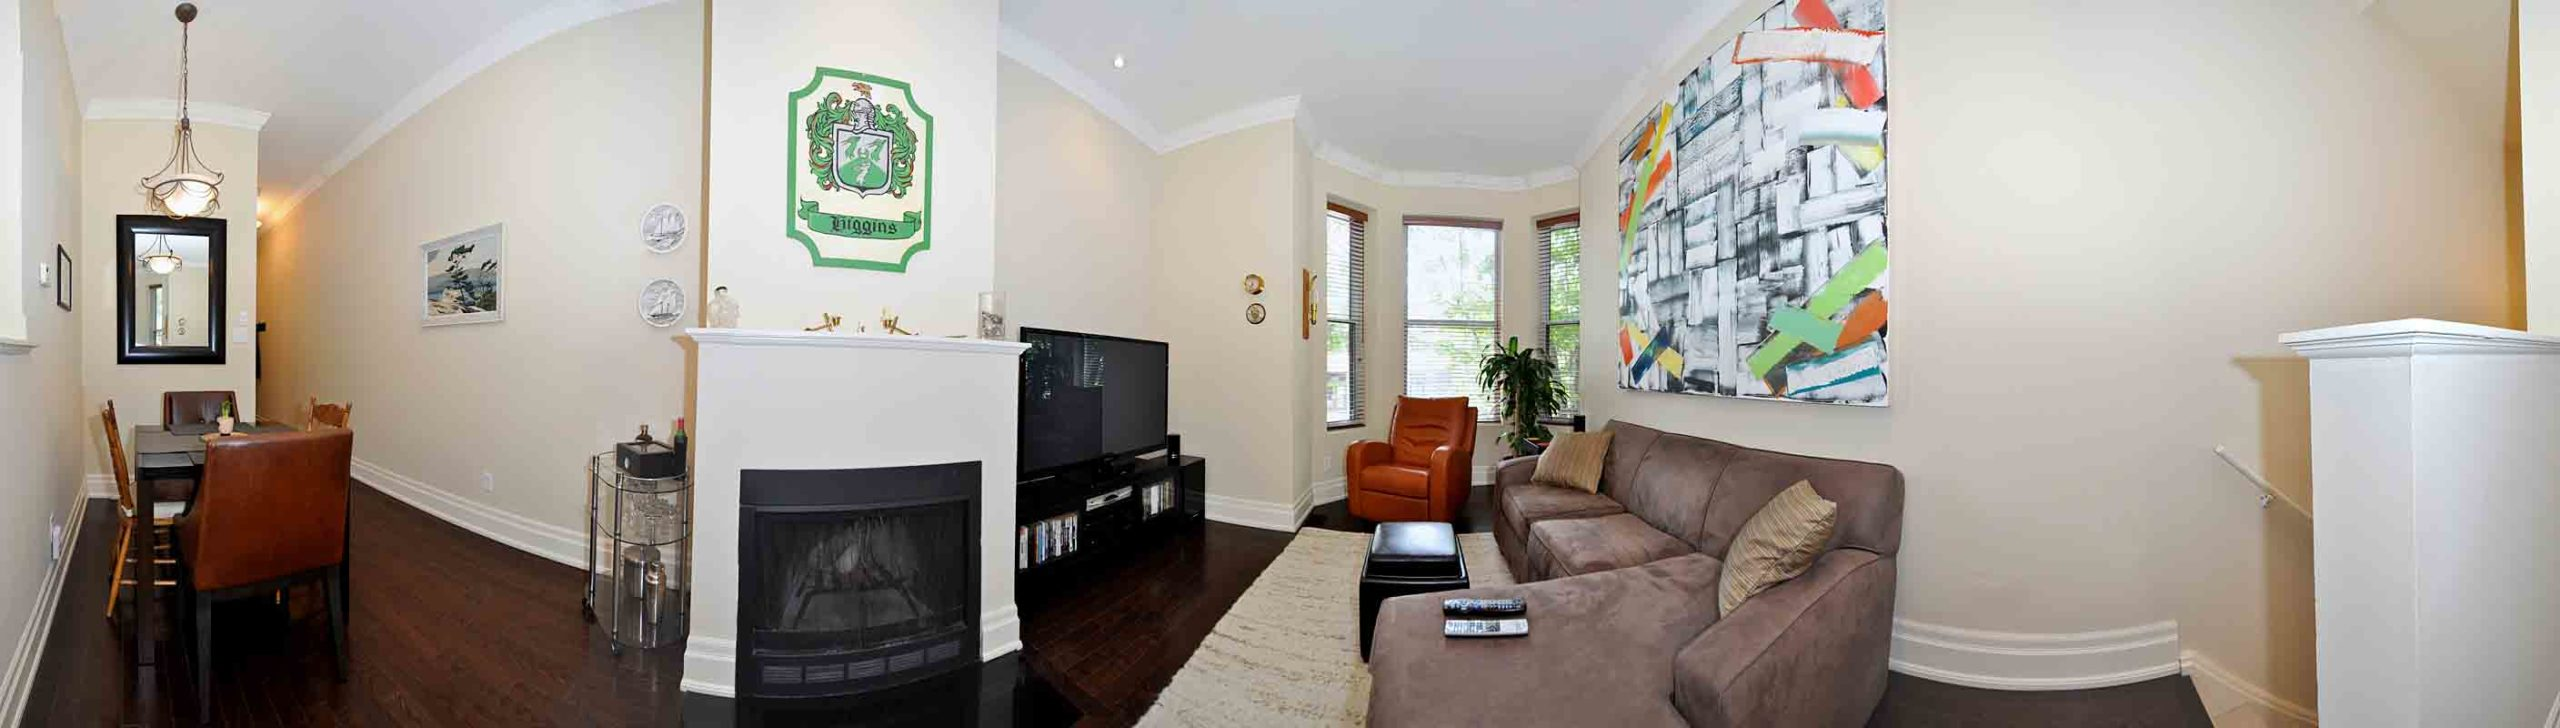 360_dundas_street_east_MLS_HID808873_ROOMlivingdiningrooms